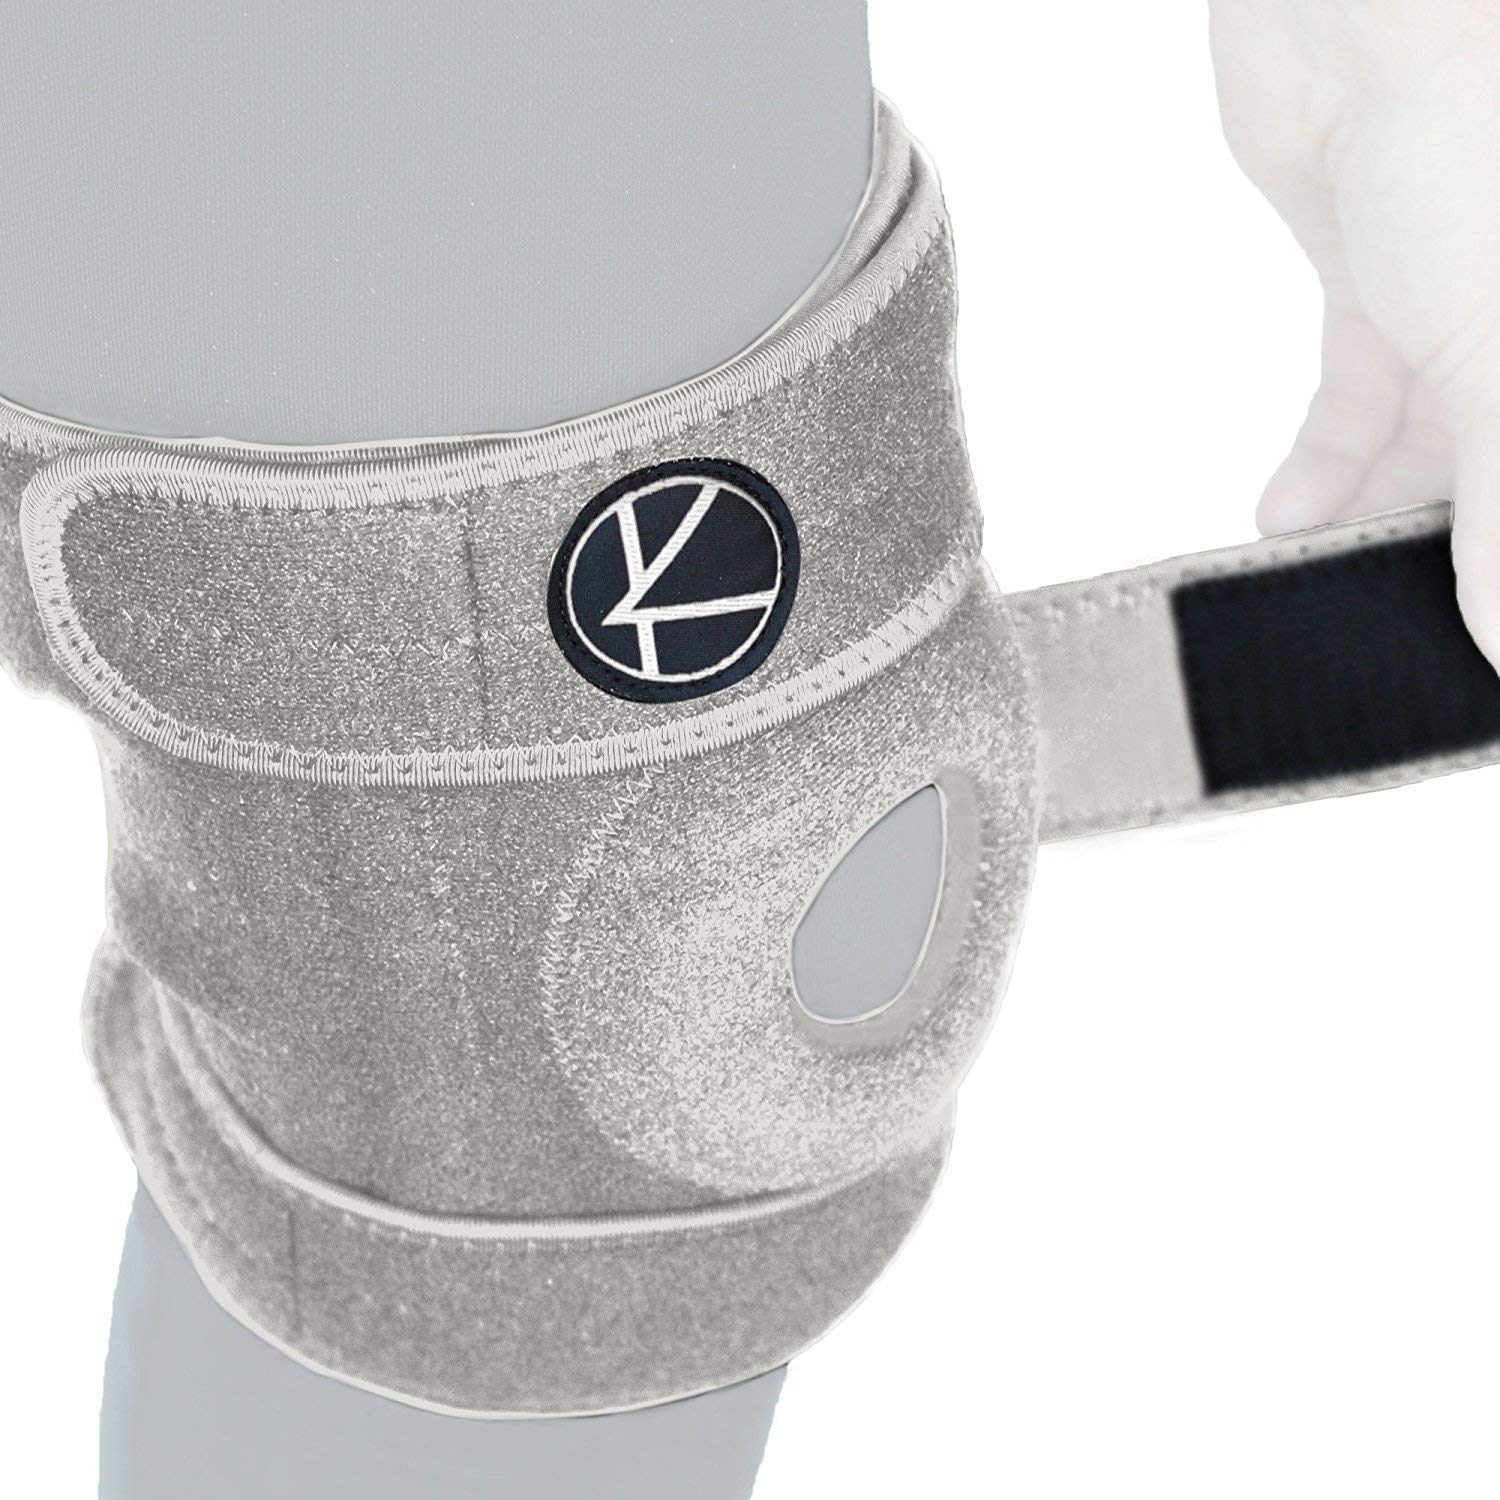 Adjustable Knee Brace Support Wrap Size 1 Gray by K A R M